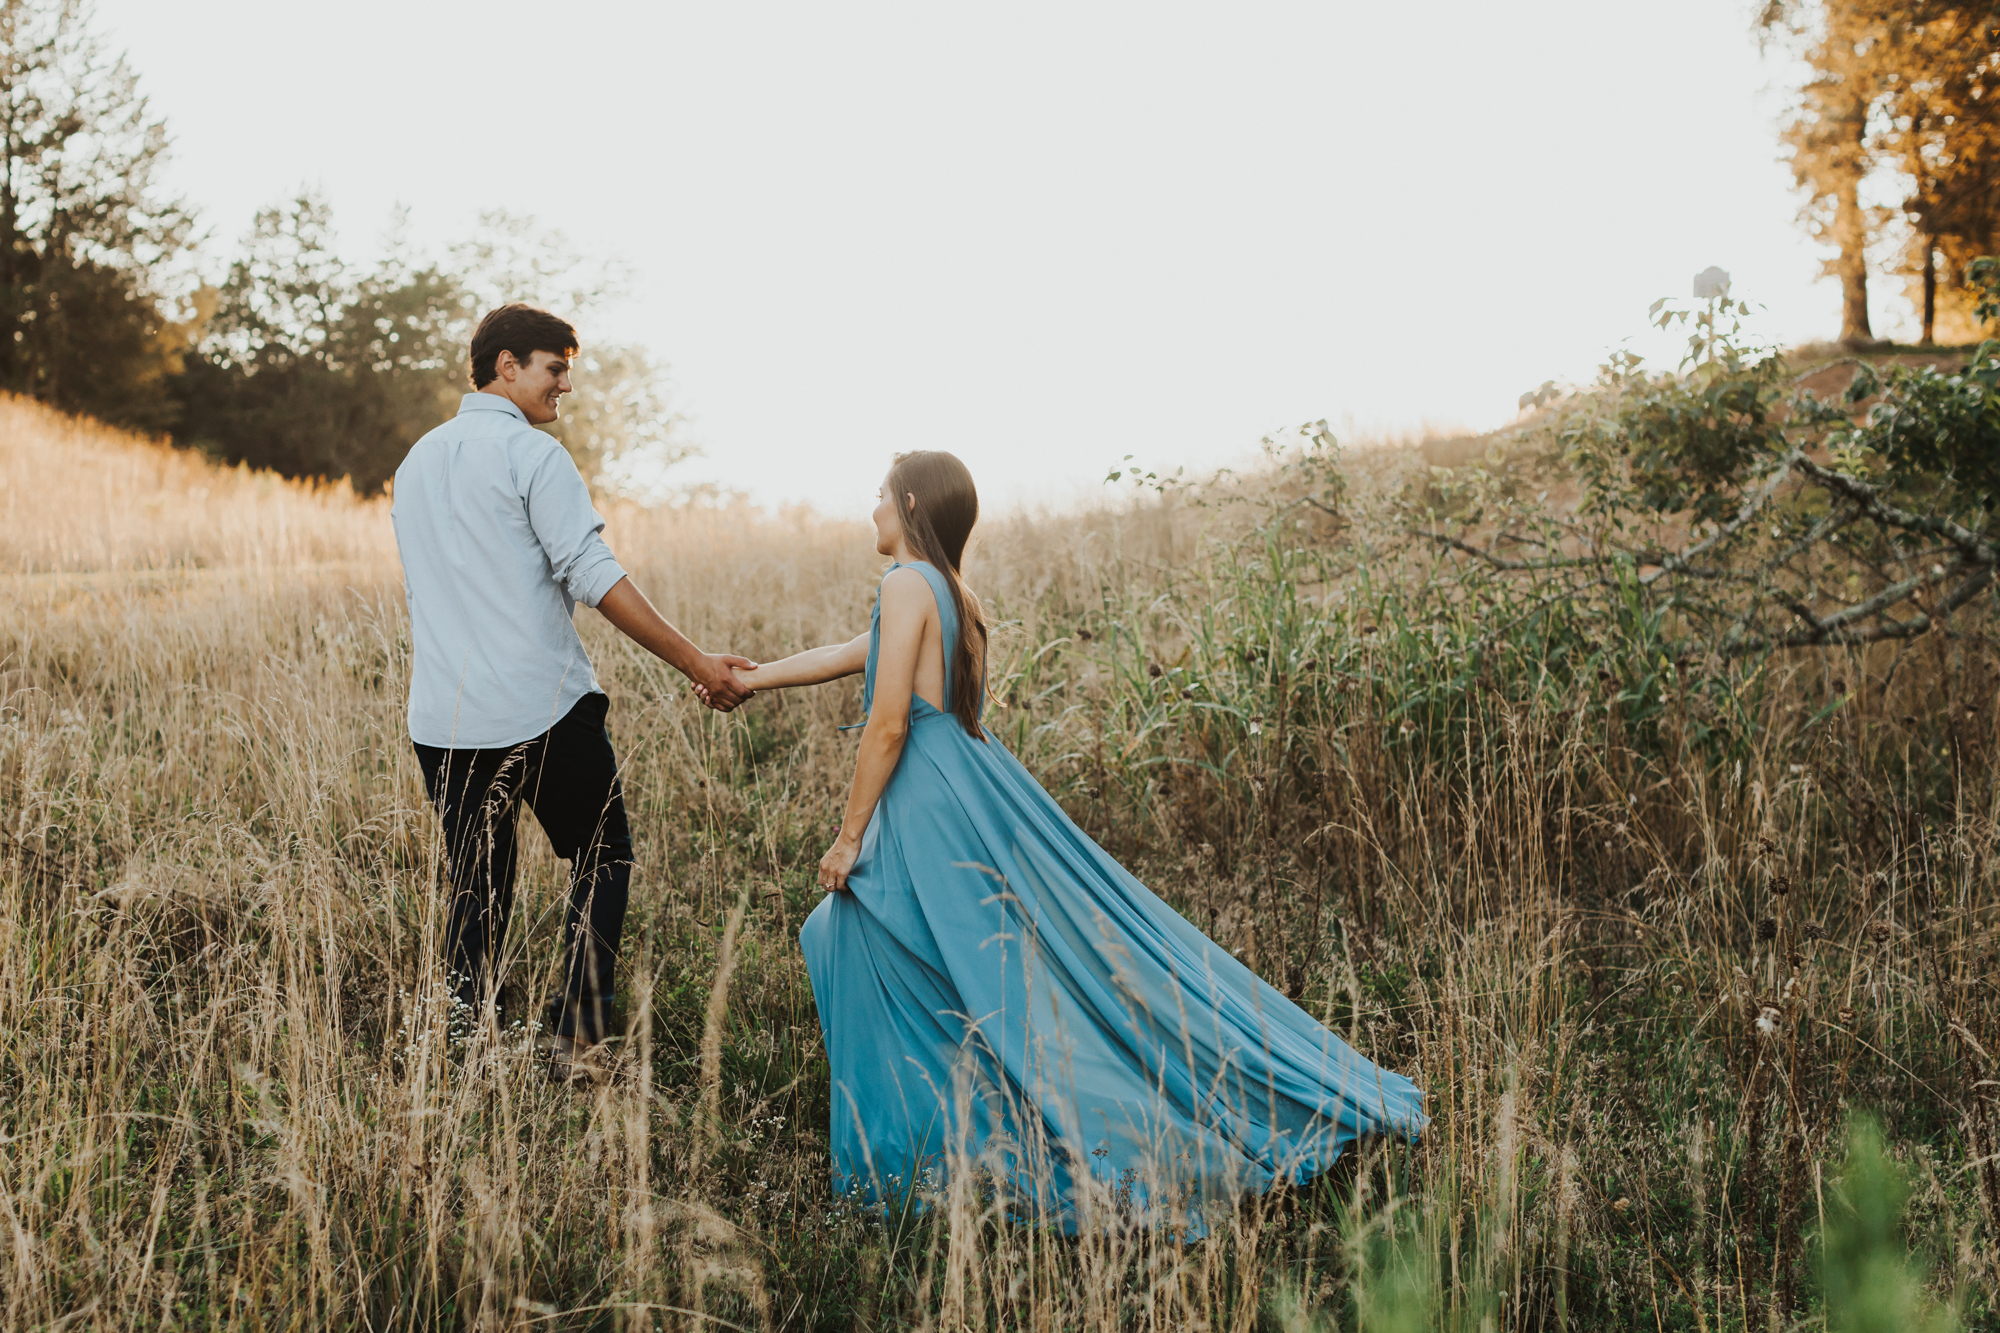 NashvilleTennessee_EngagementPhotos_Sunset_Summer_Adventure-2237.jpg